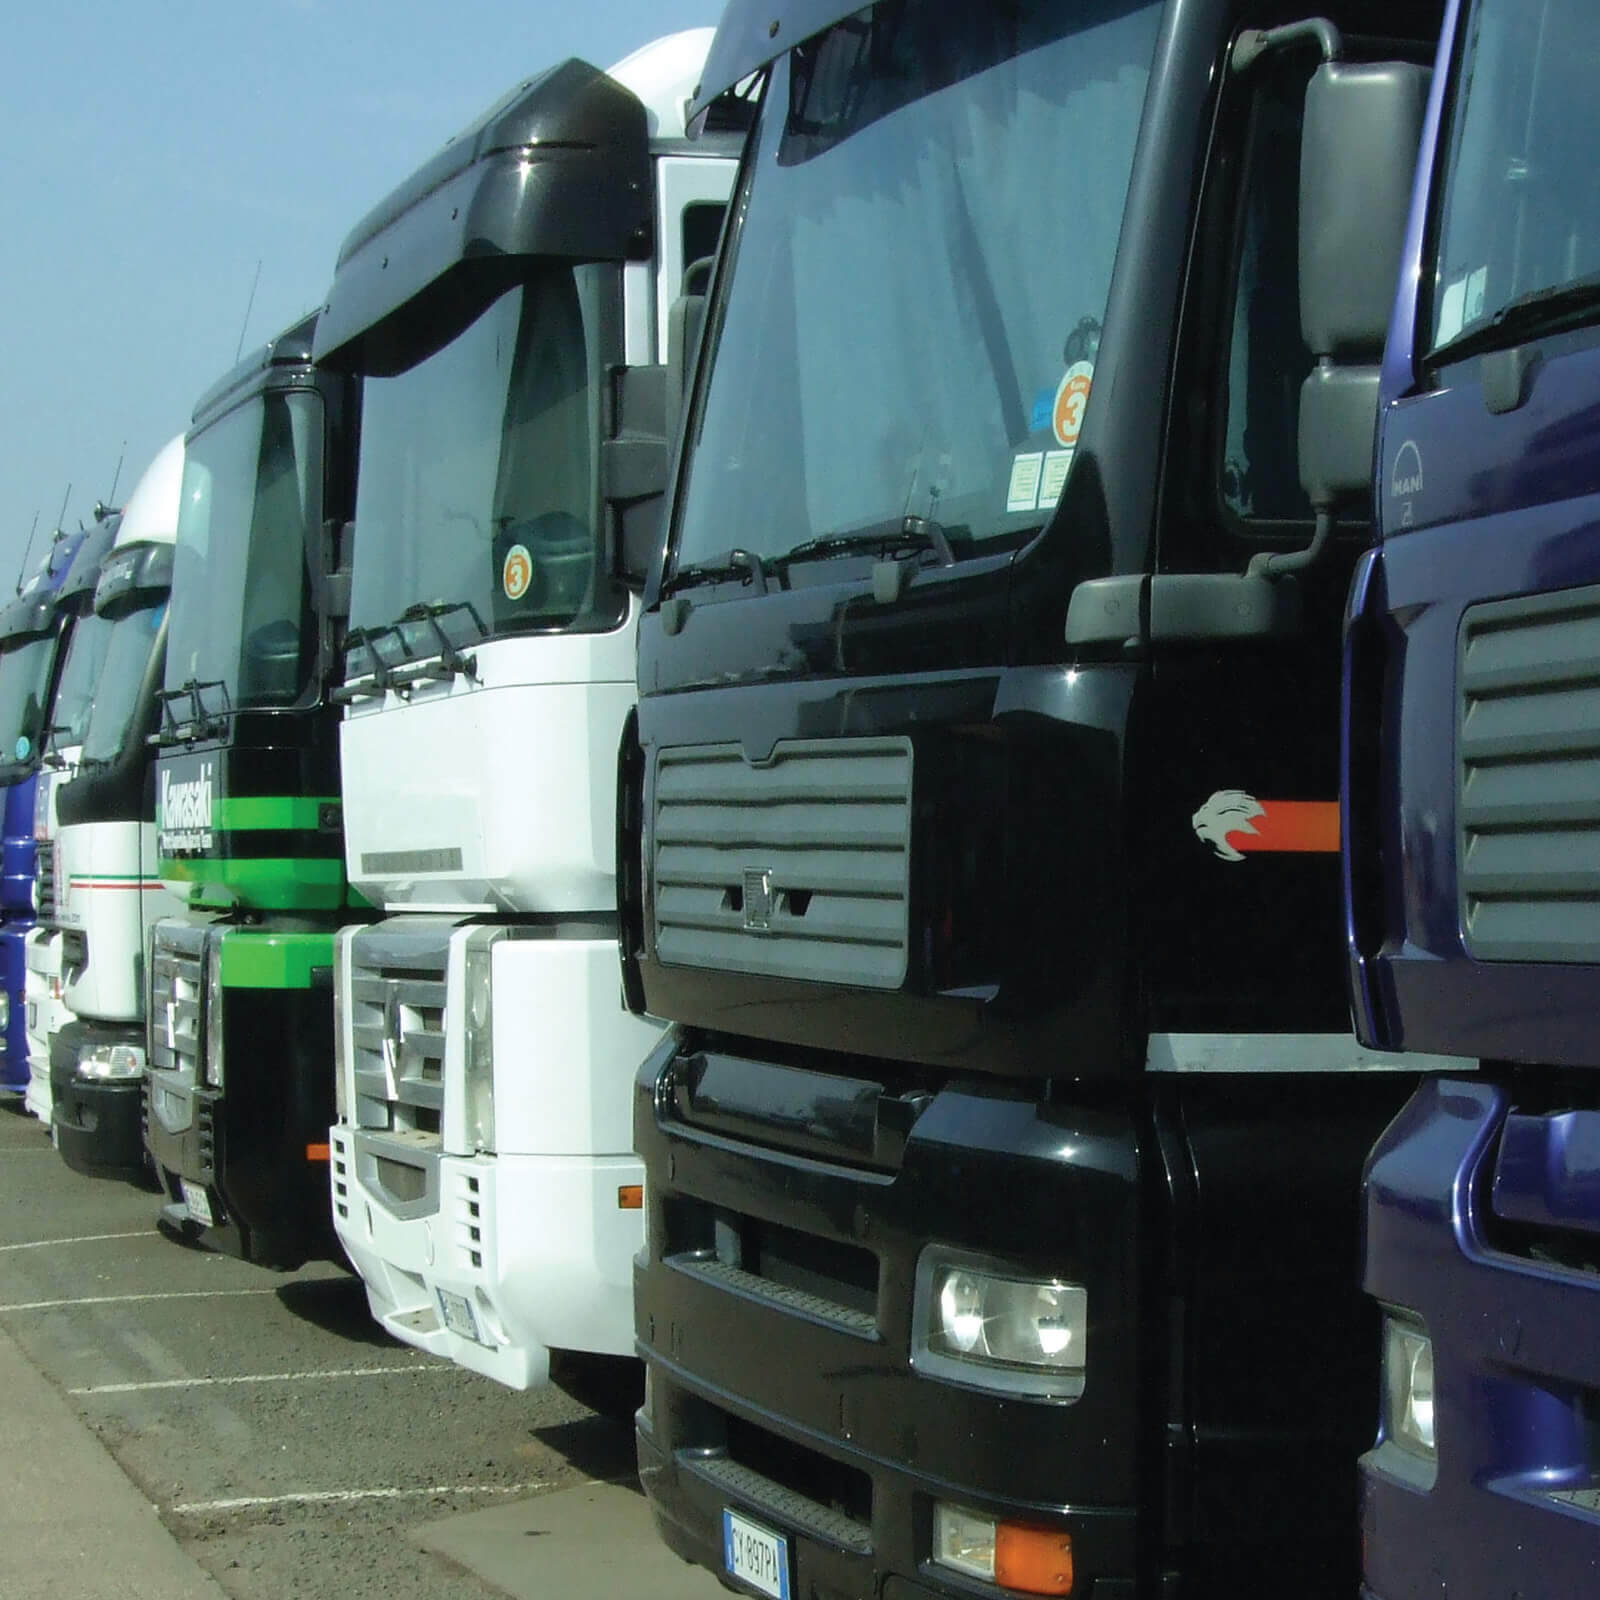 a line of parked heavy goods vehicles